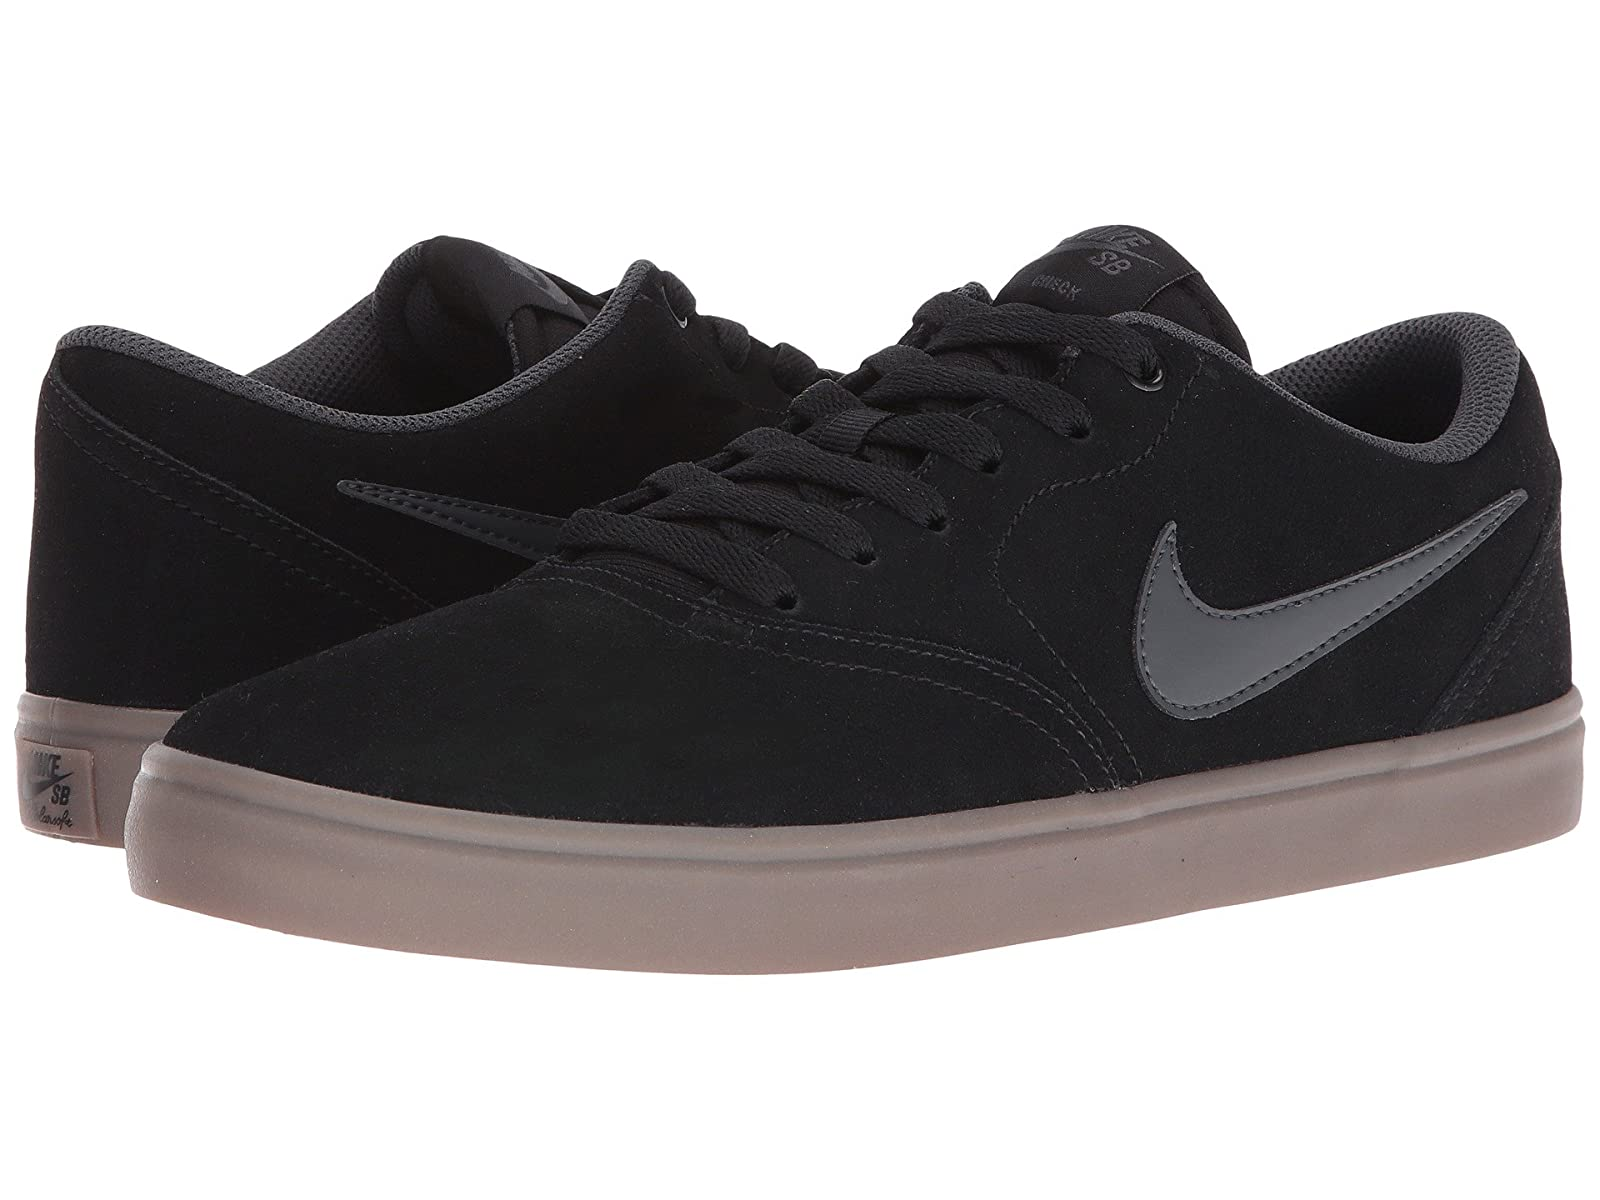 Nike SB Check Solar SuedeAtmospheric grades have affordable shoes